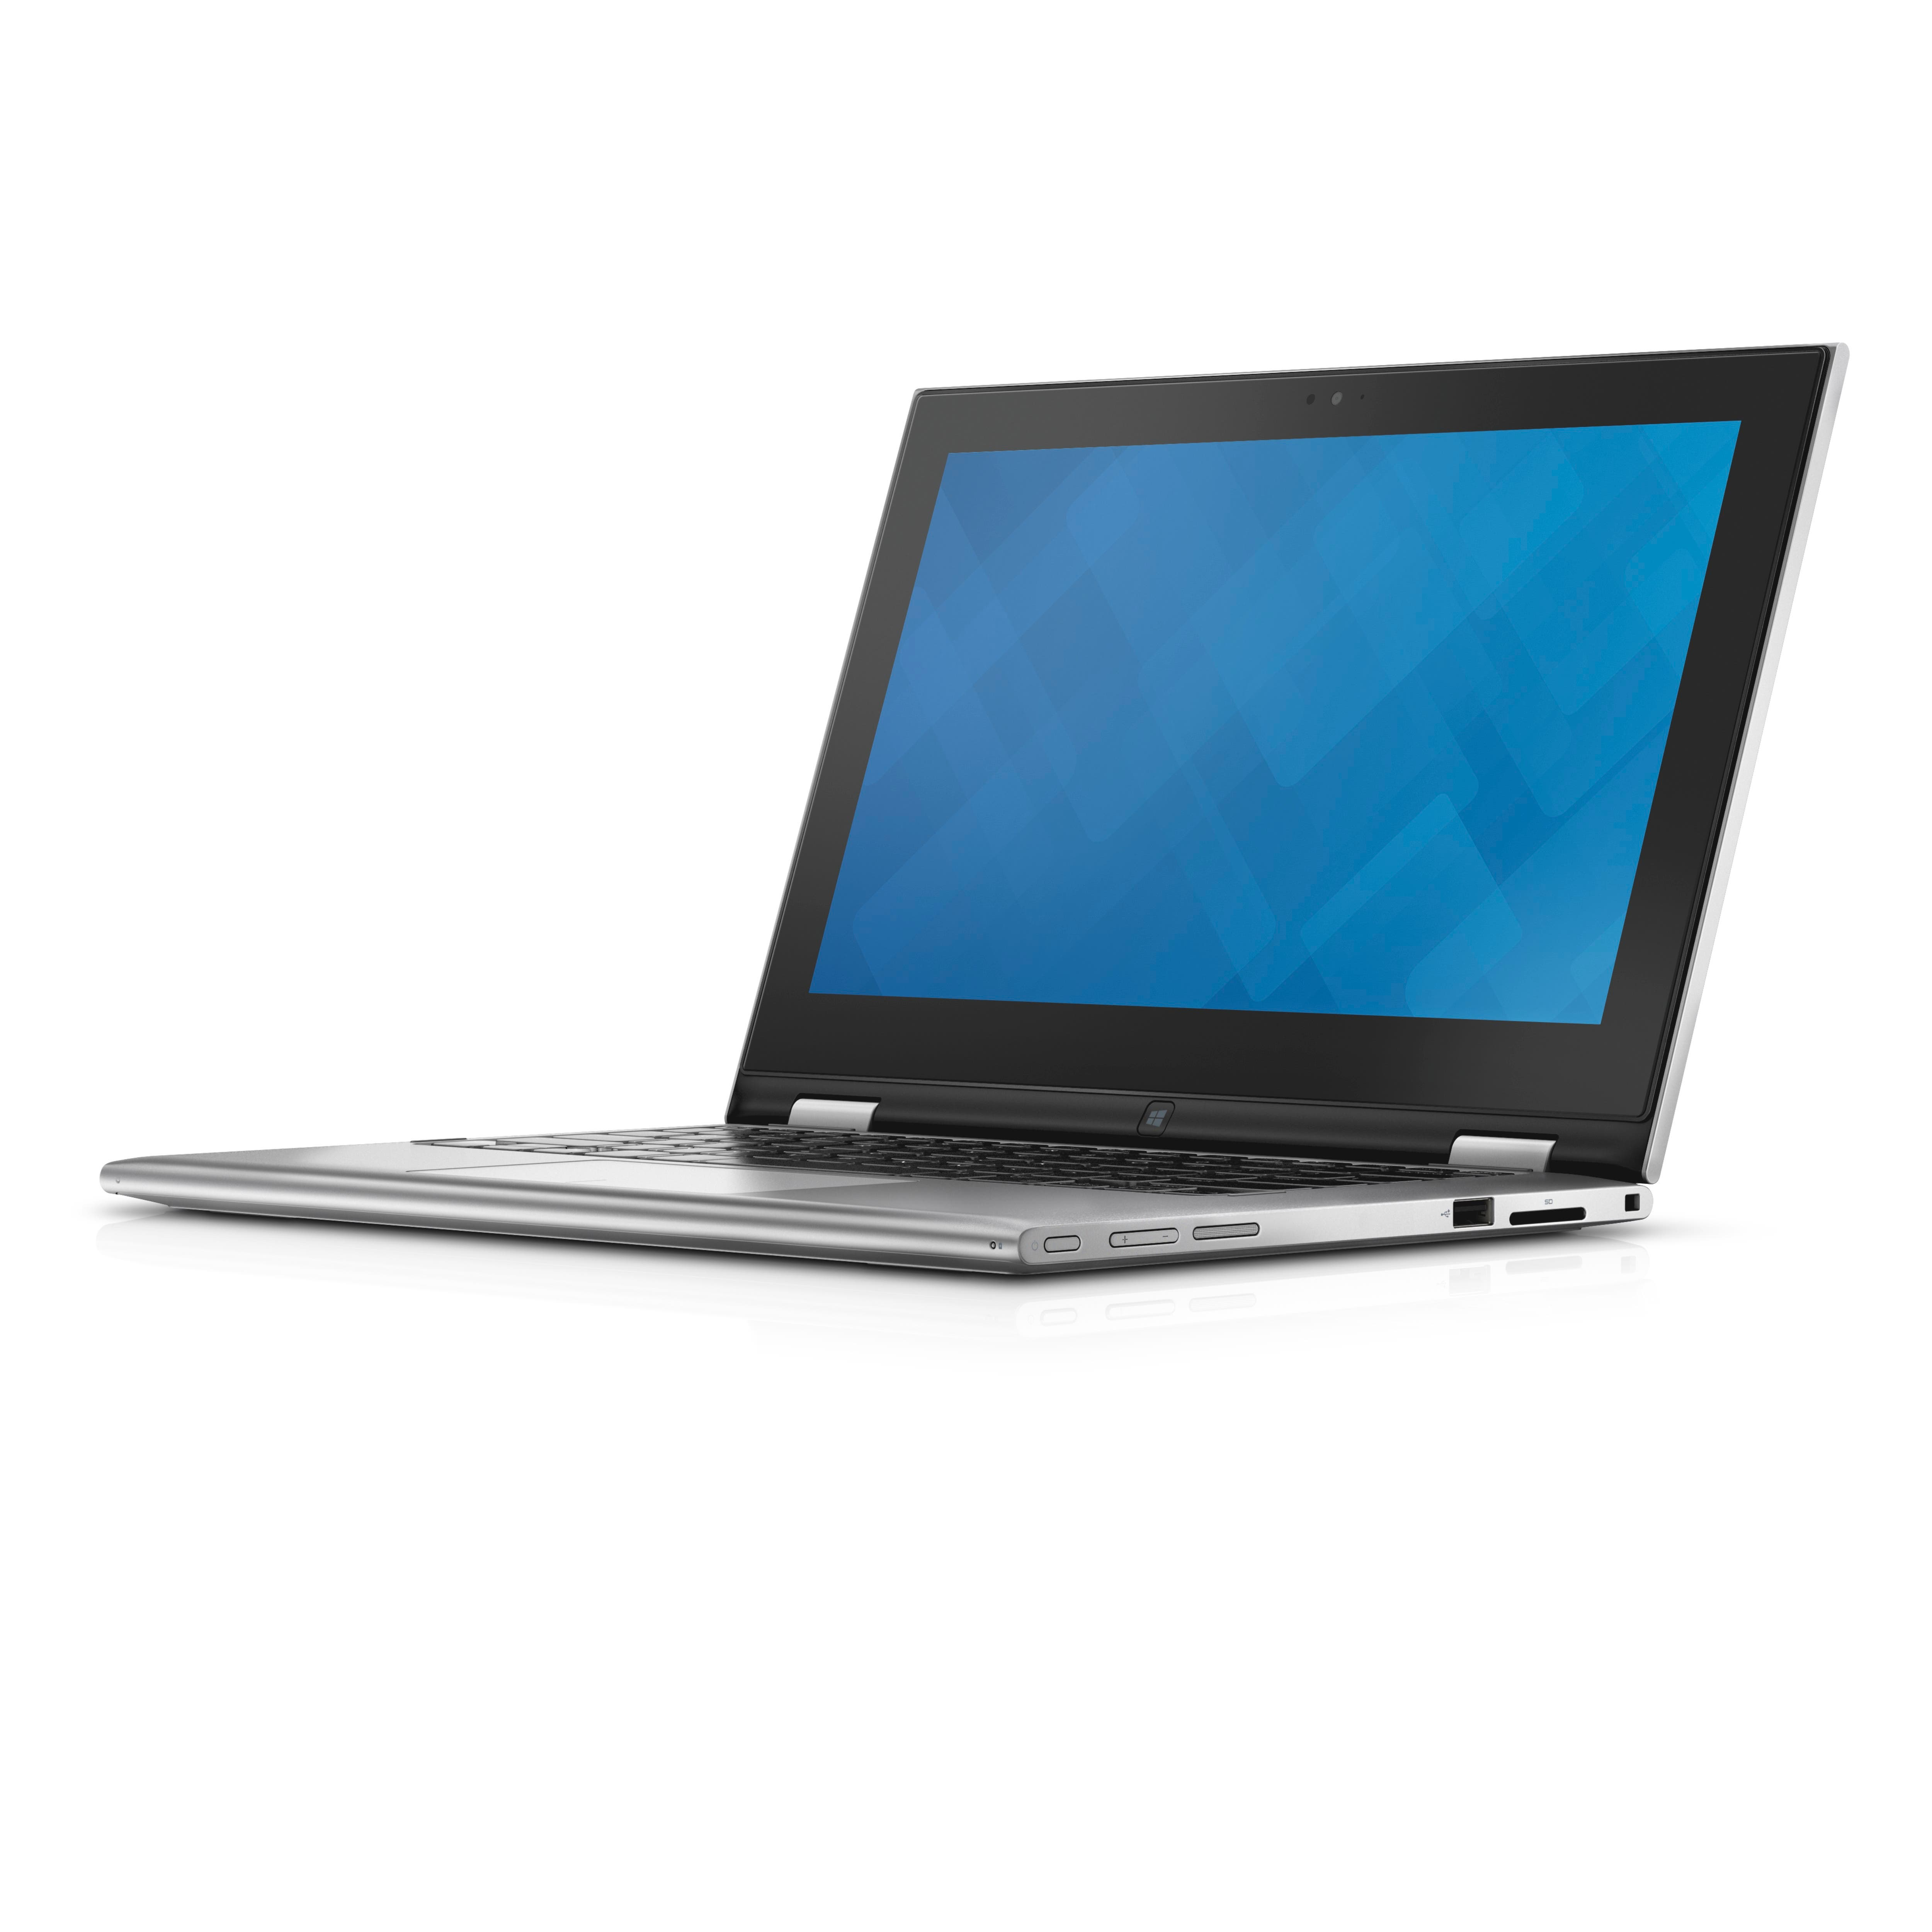 dell inspiron 11 3000 dell inspiron 13 7000 yoga style 2 in 1 notebooks mit intel bay trail. Black Bedroom Furniture Sets. Home Design Ideas